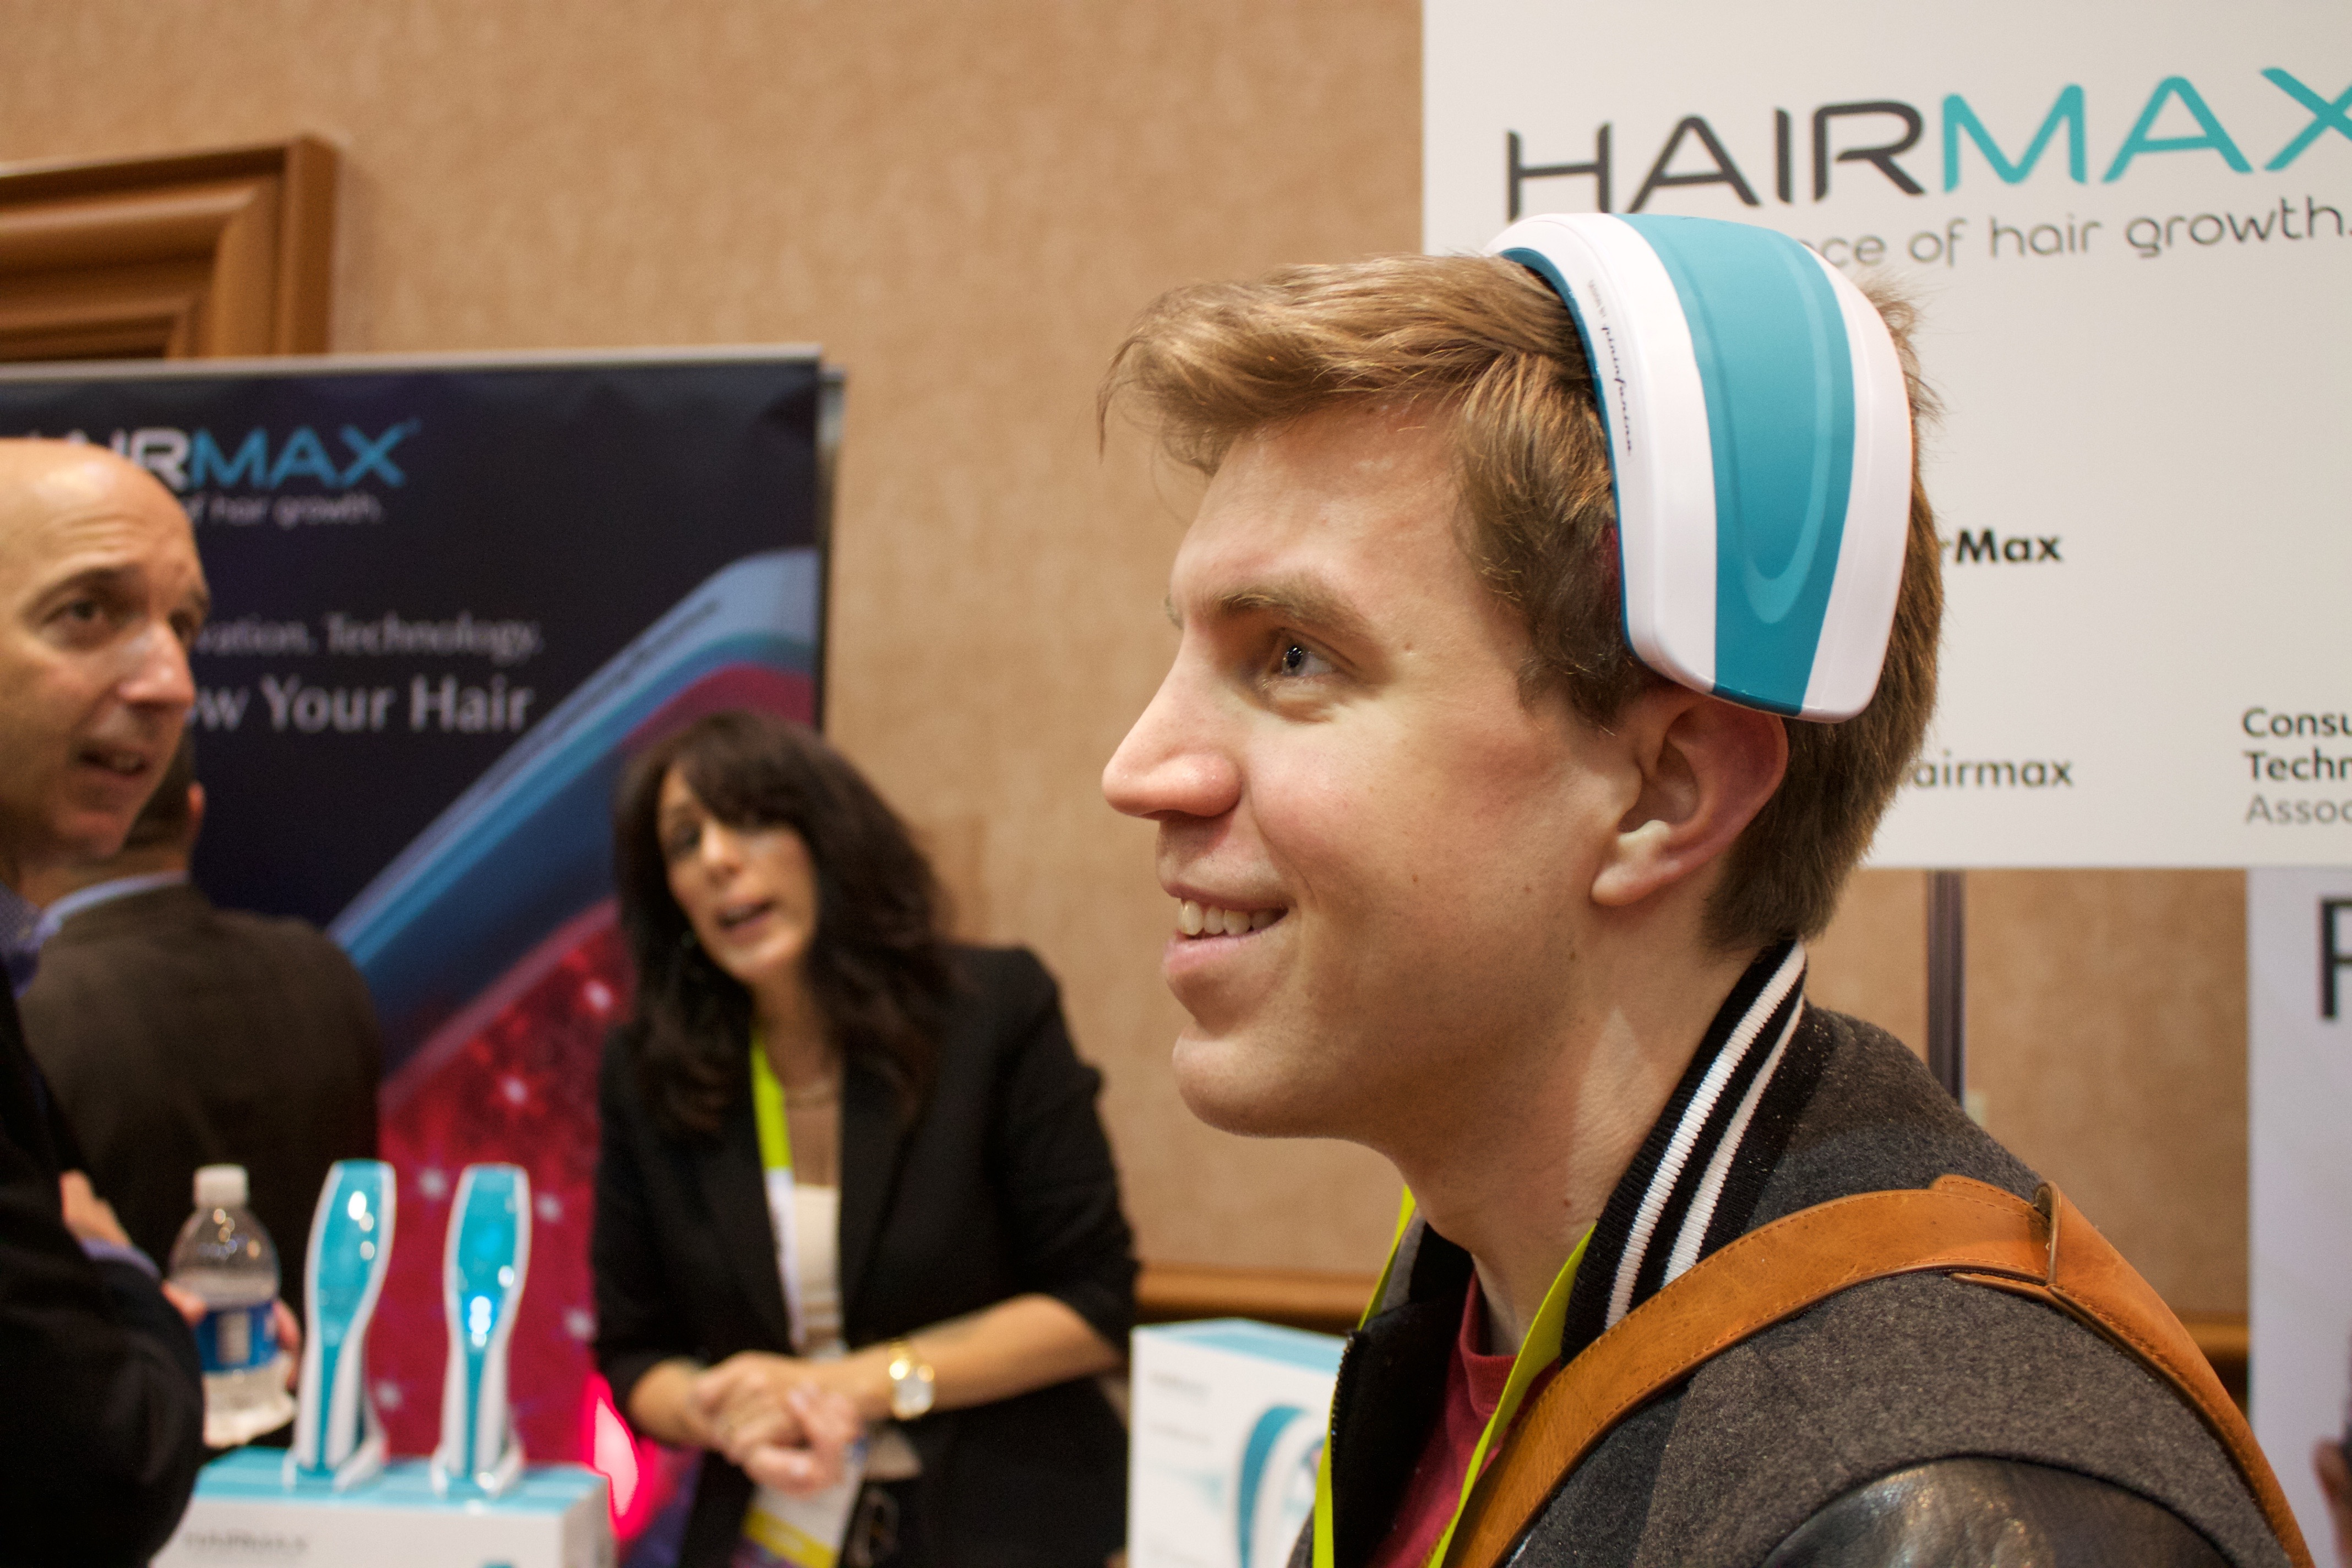 The Laser Hair Growth Devices At Ces Skate By On Shaky